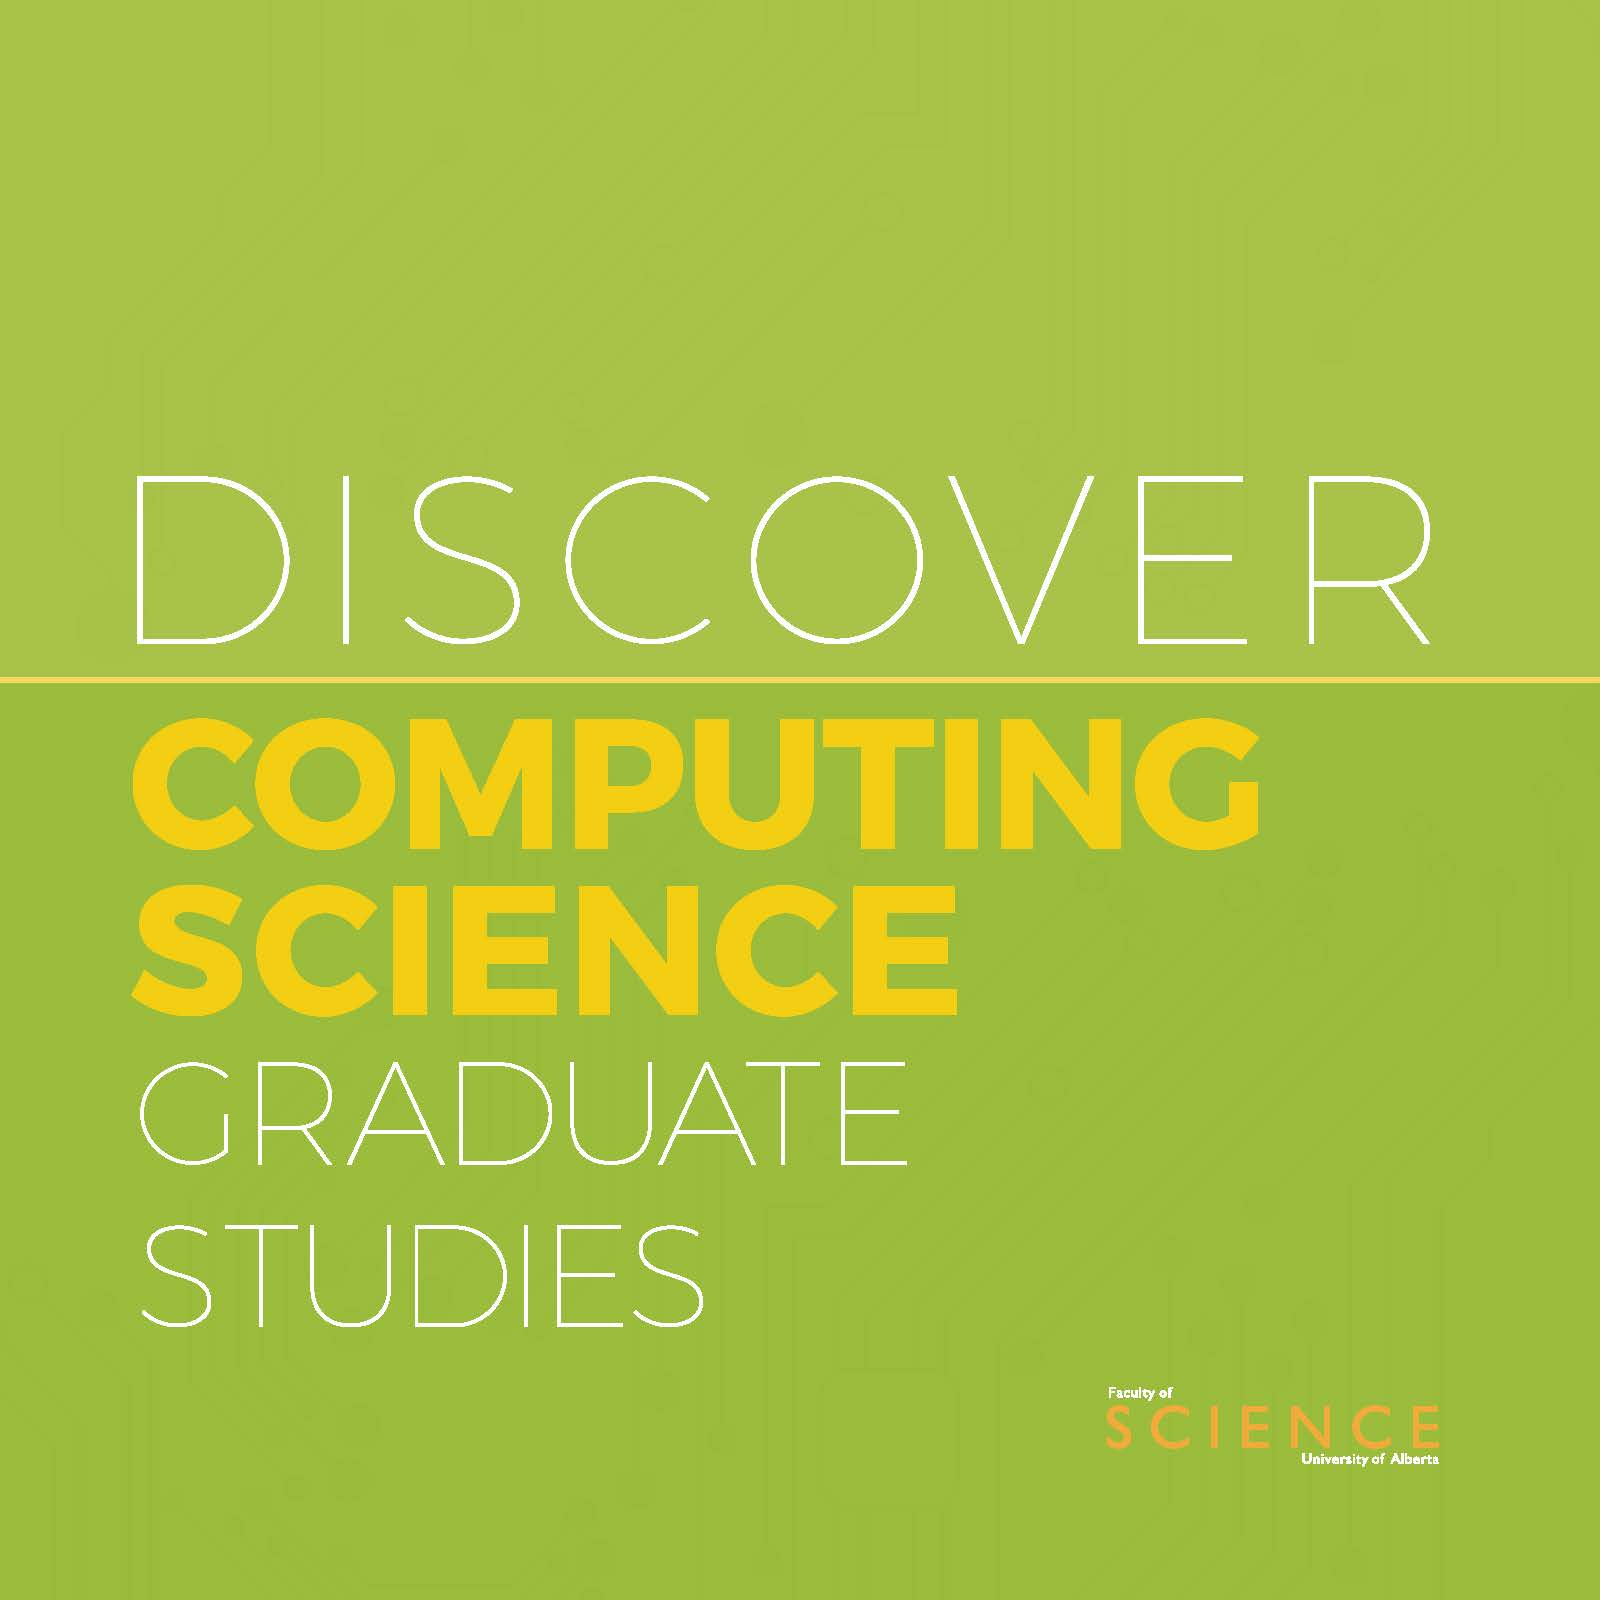 Computing Science Graduate Studies